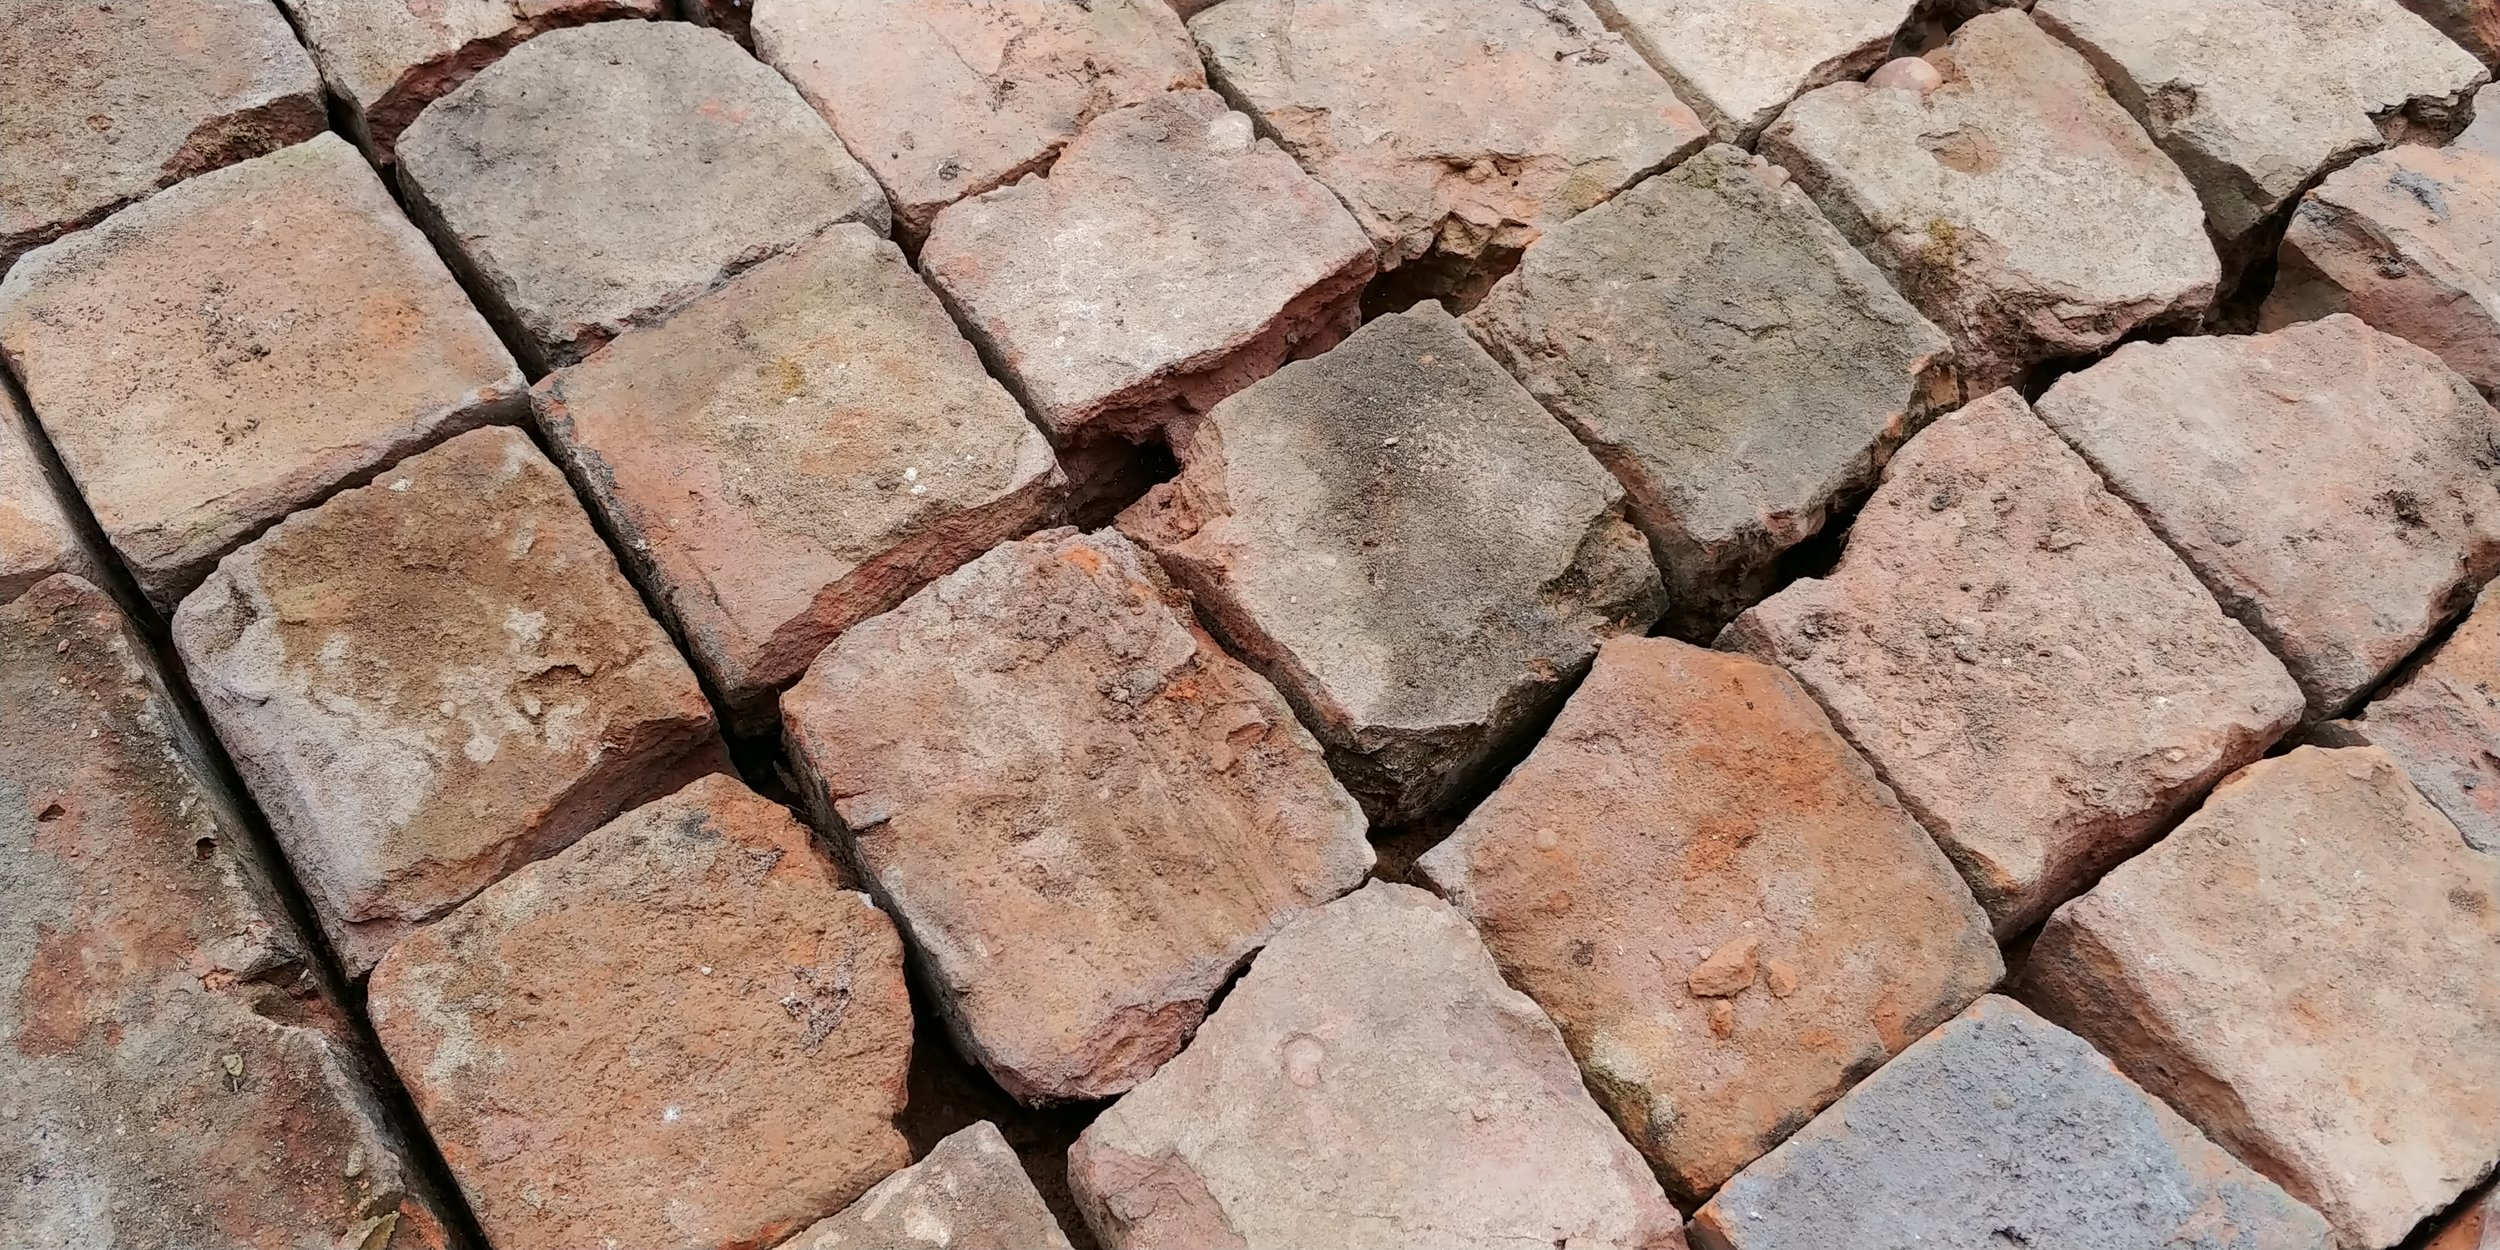 Close up of the cobbles showing how rough looking they are. Once filled with paving sand, it disguises the jagged edges.